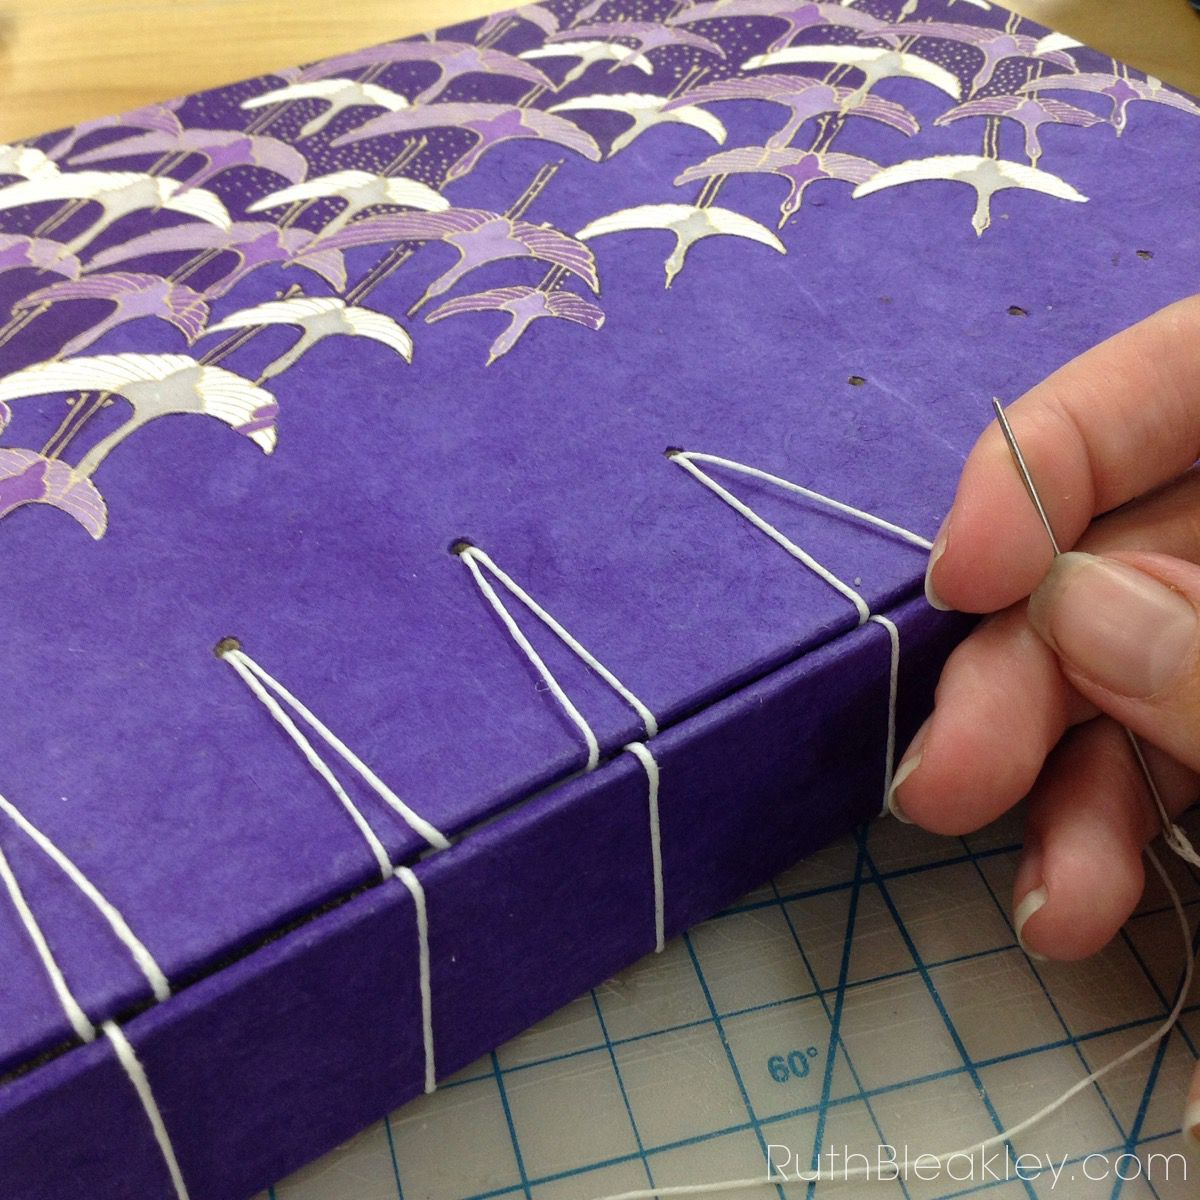 Secret Belgian binding book workshop taught by Holly Fouts - 5